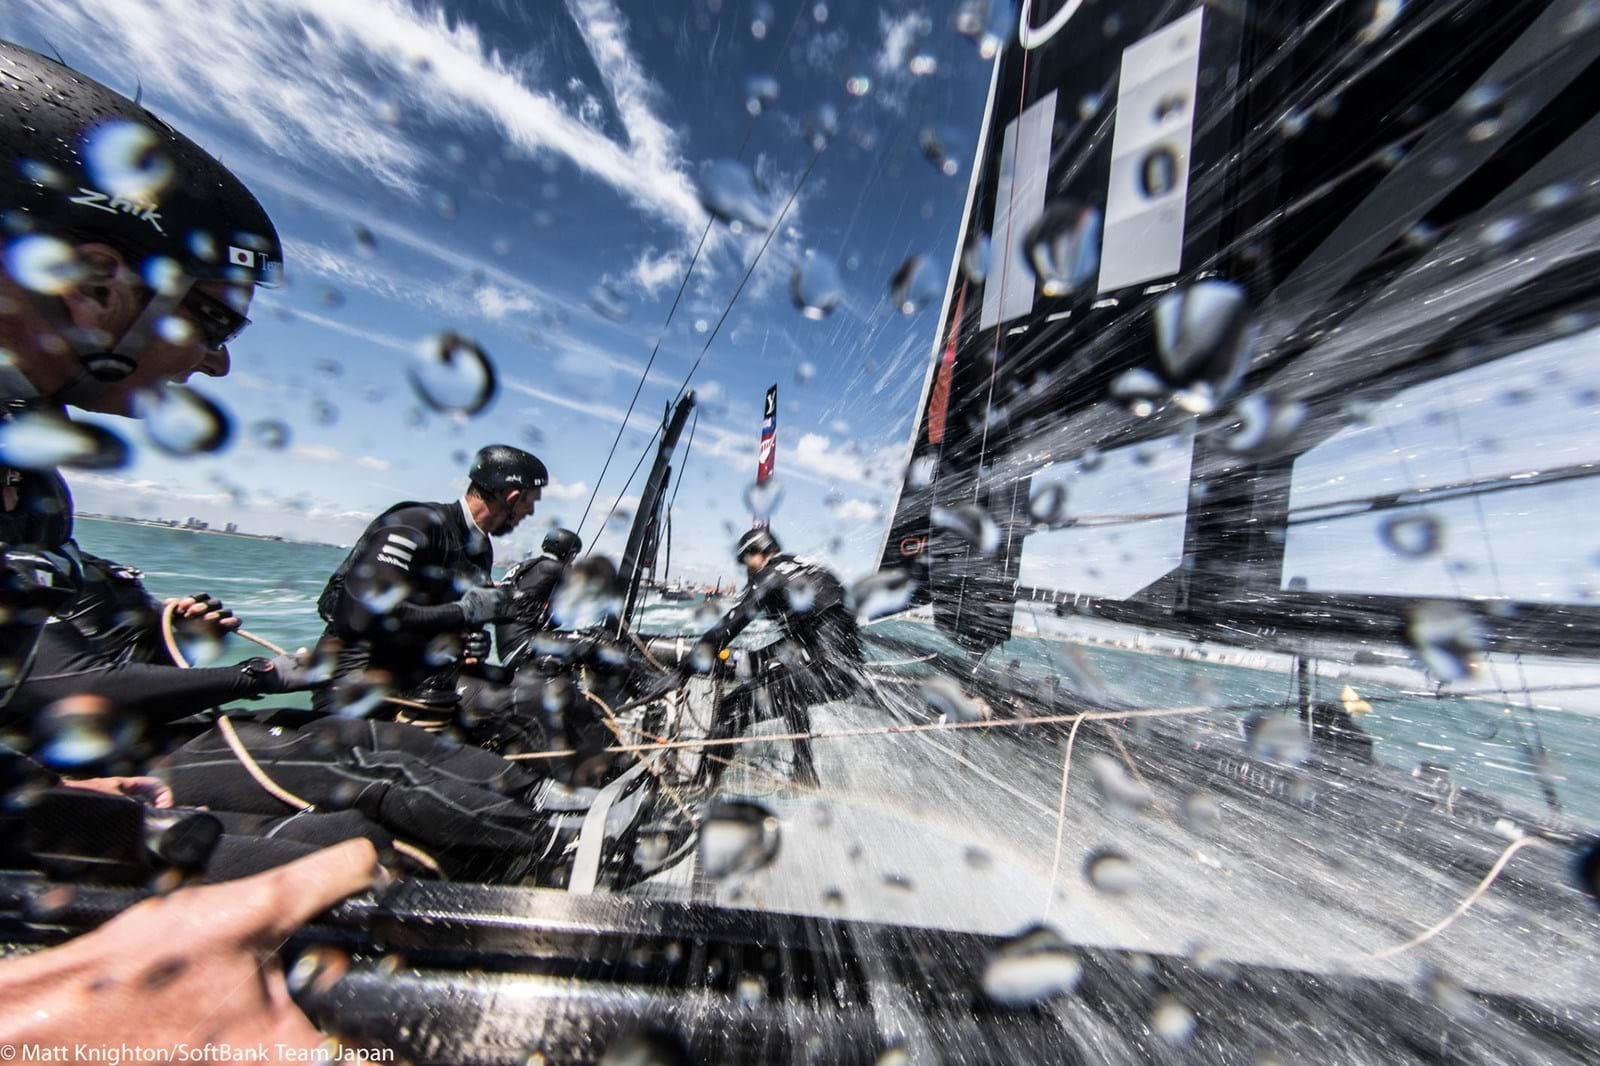 SUNSET+VINE TO PRODUCE BT SPORT'S AMERICA'S CUP COVERAGE